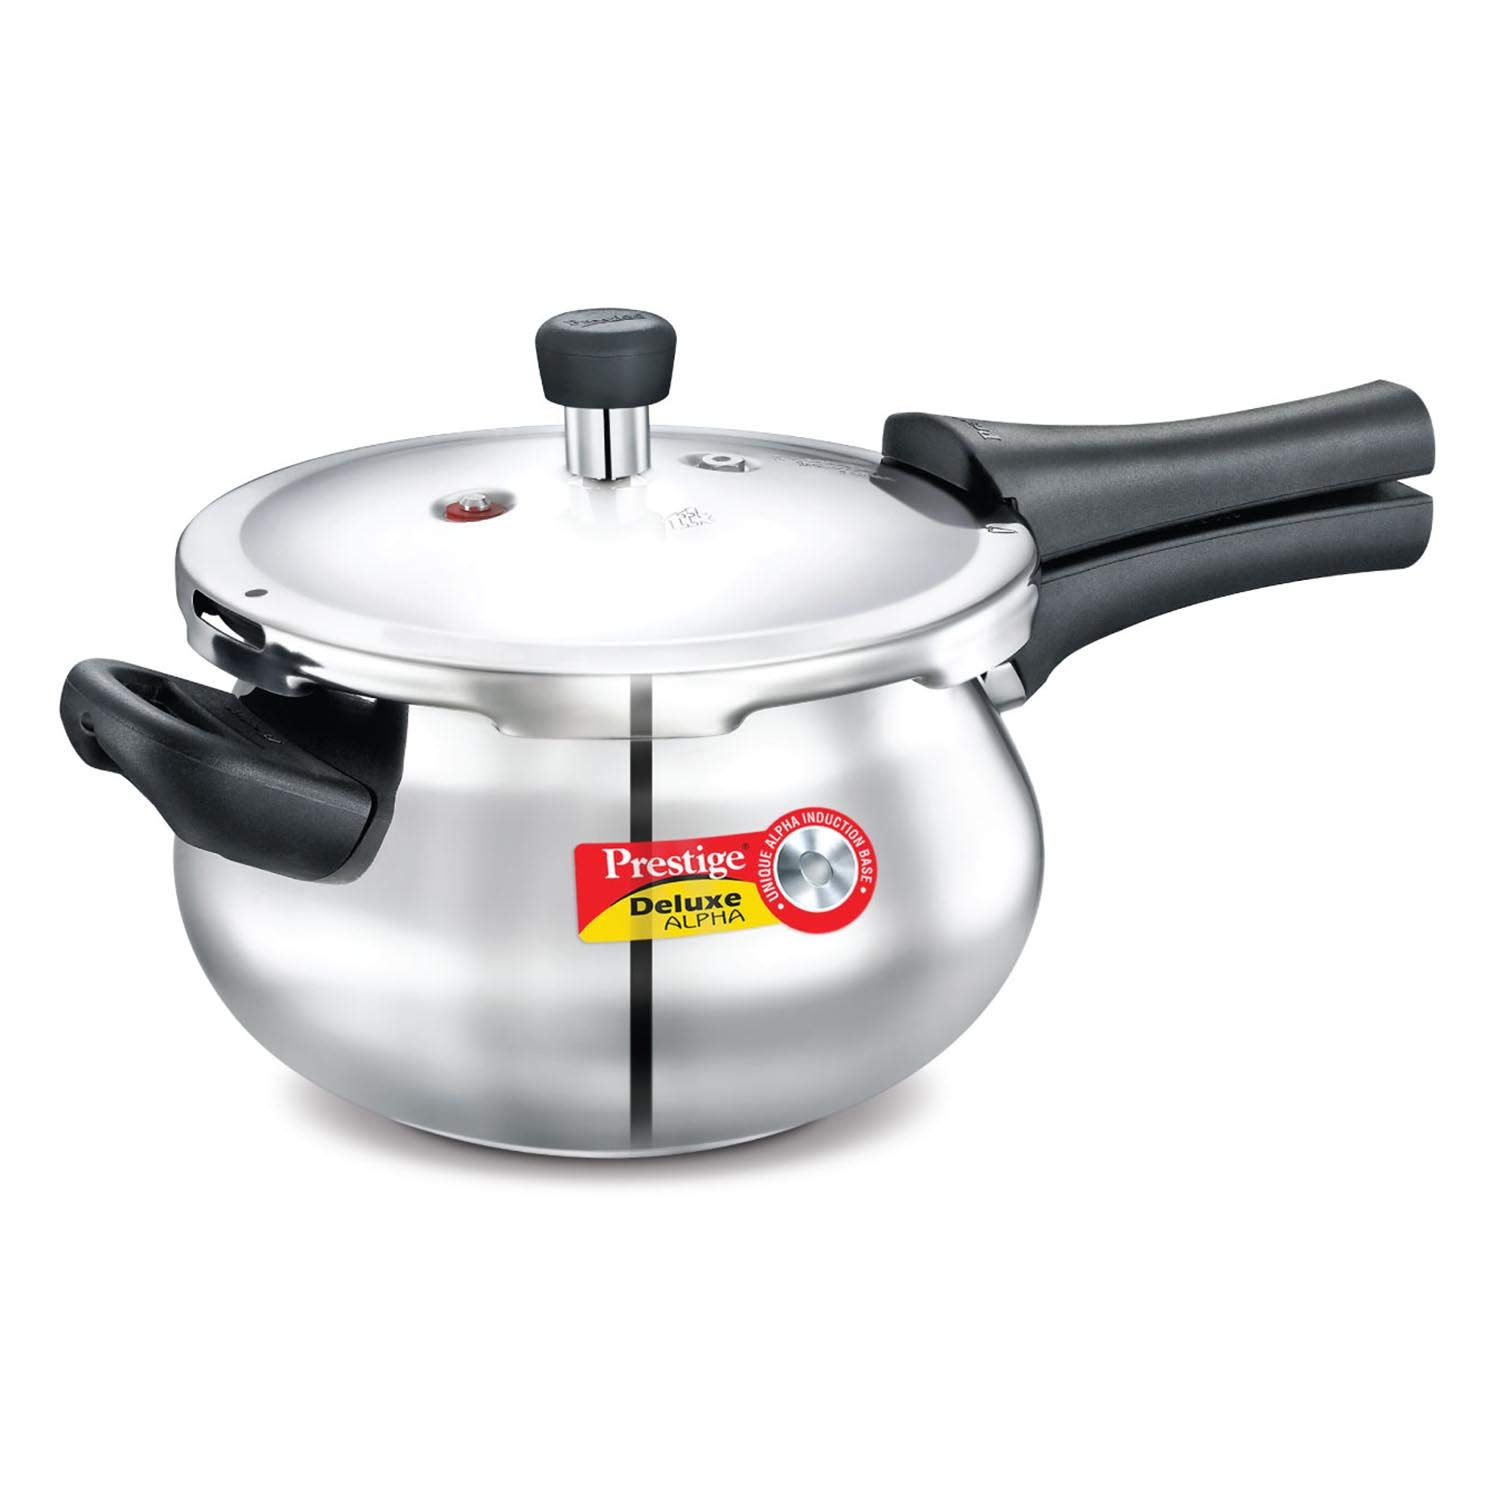 Prestige Deluxe Alpha Outer Lid Stainless Steel Pressure Cooker, 3.3 litres, Silver product image